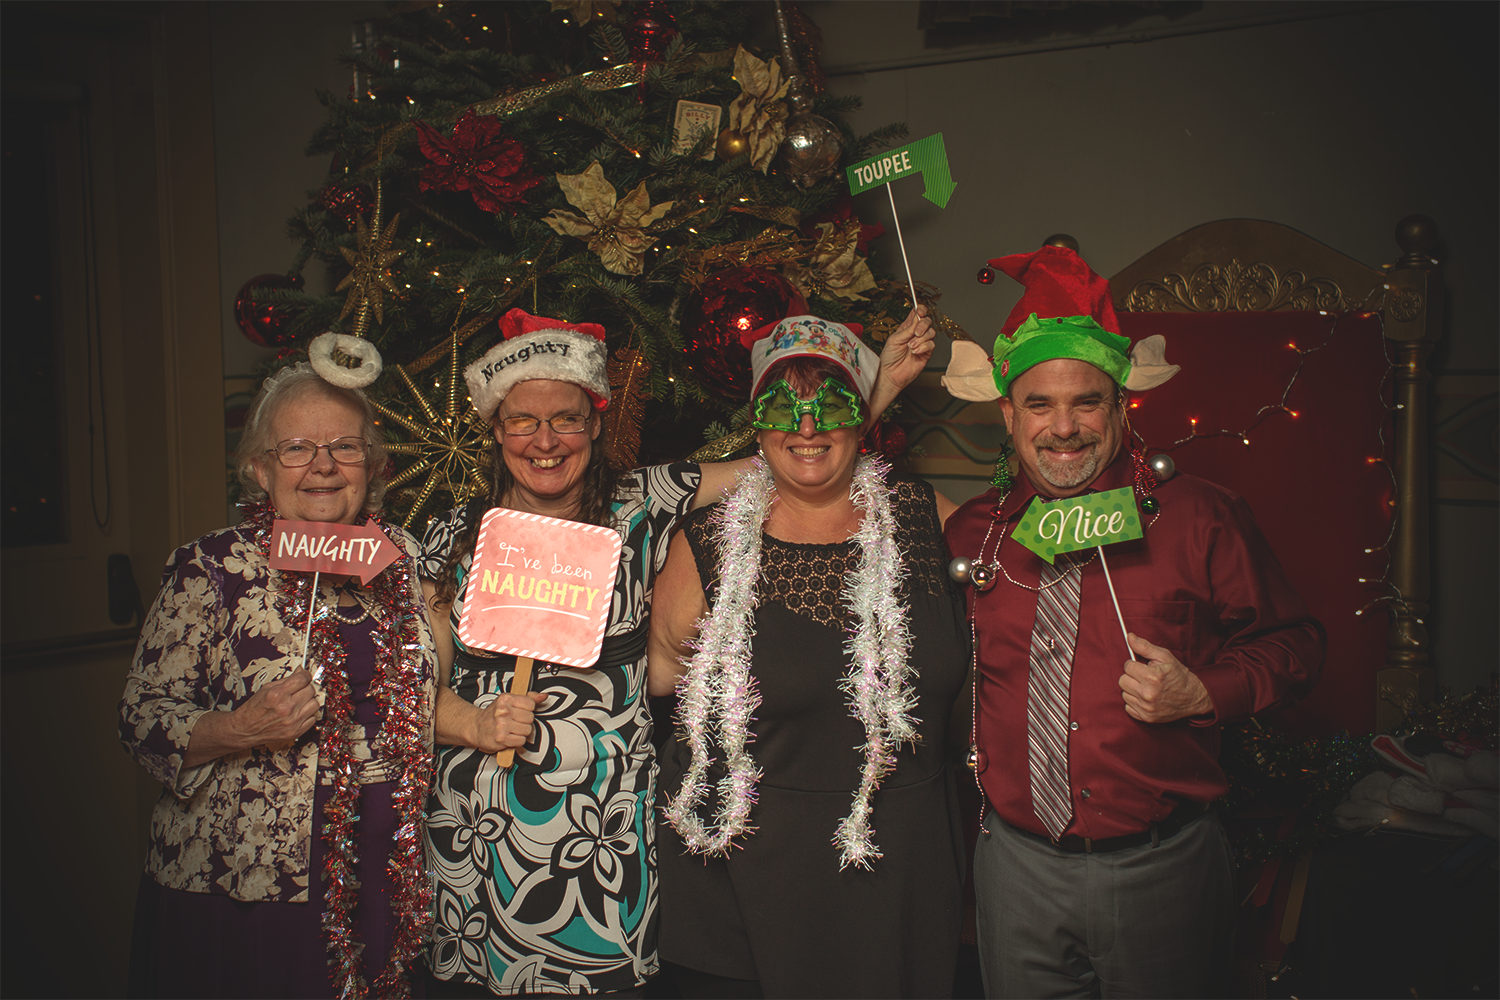 epproperties-vancouver-washington-xmas-party-photolga20.png